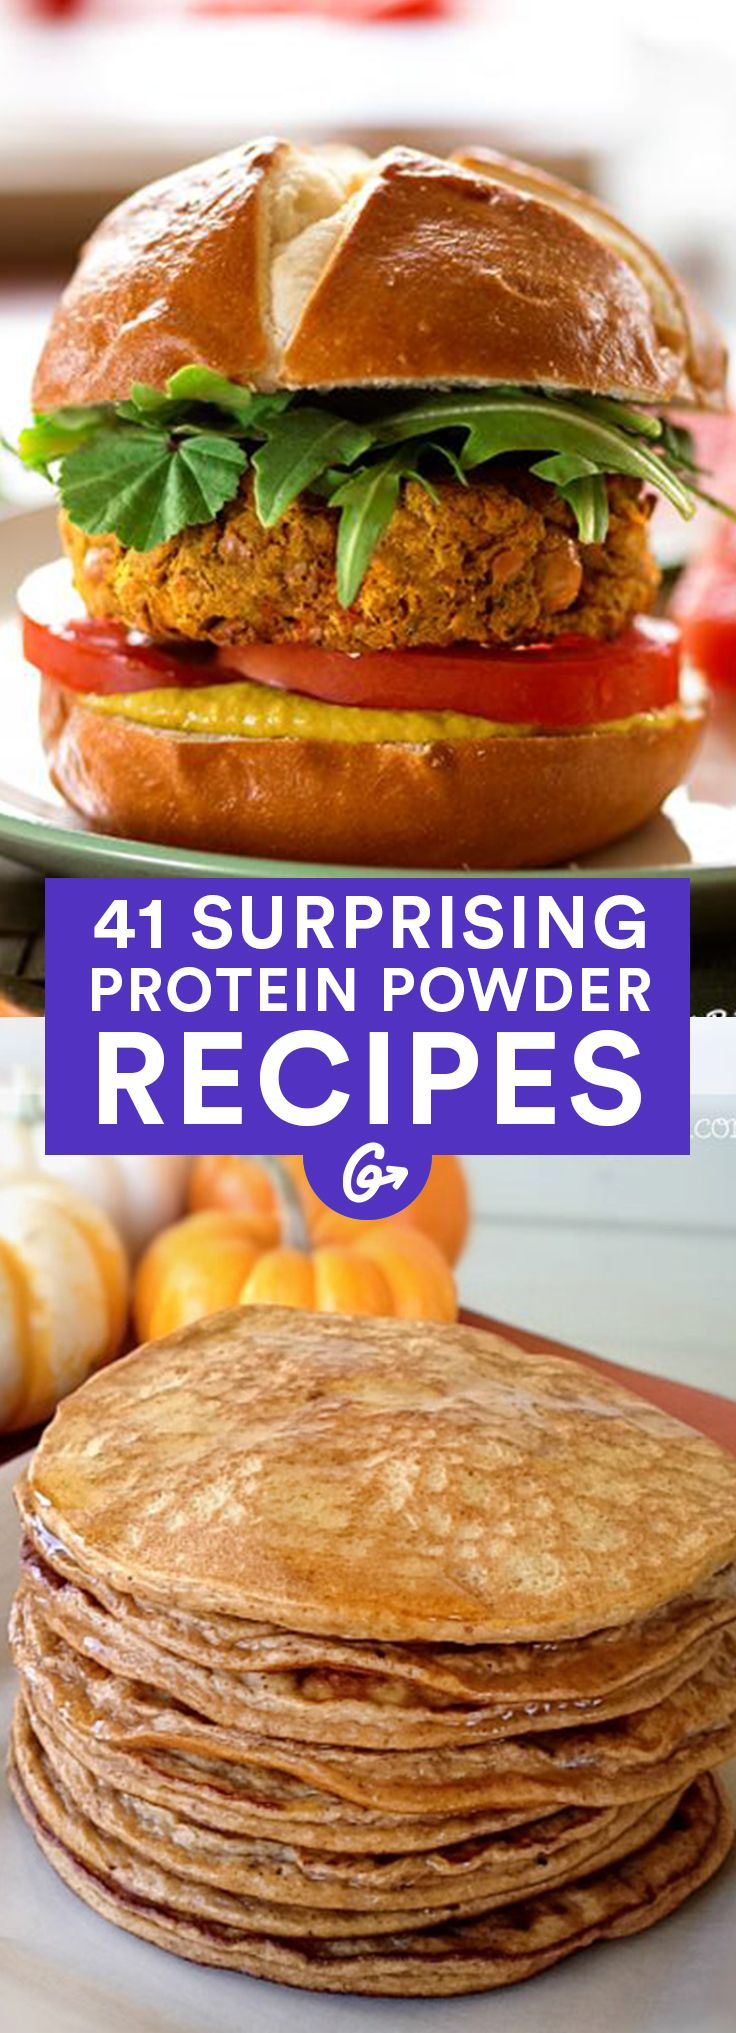 41 Sneaky Ways to Add Protein Powder Into Every Meal